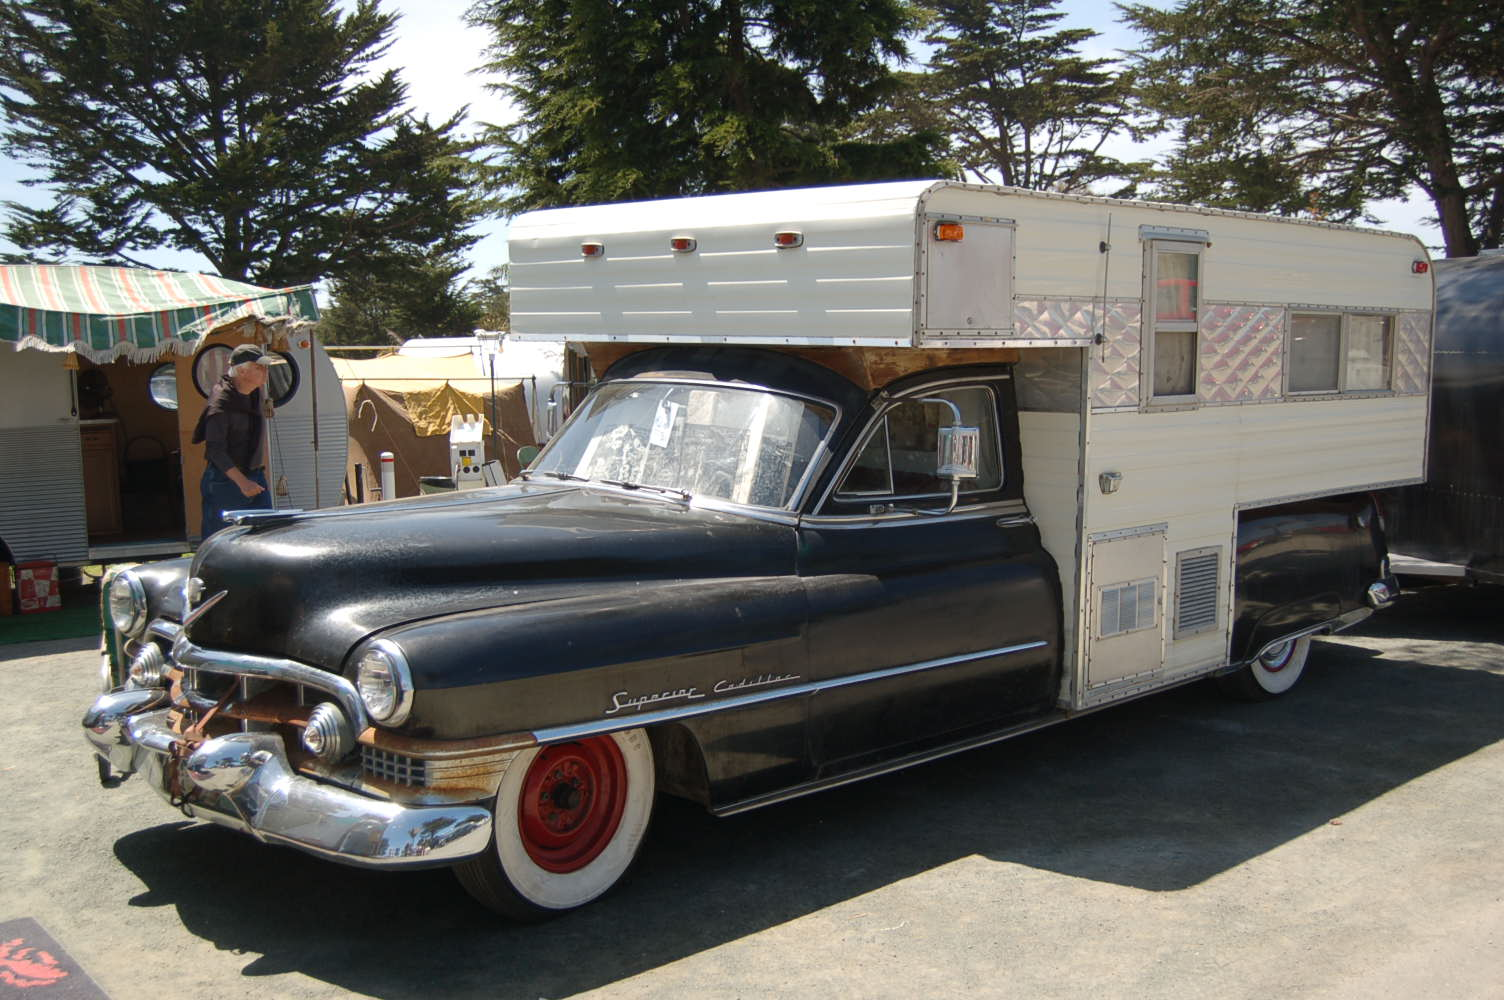 Very Unique 1952 Cadillac That Has Been Turned Into A One Of Camper